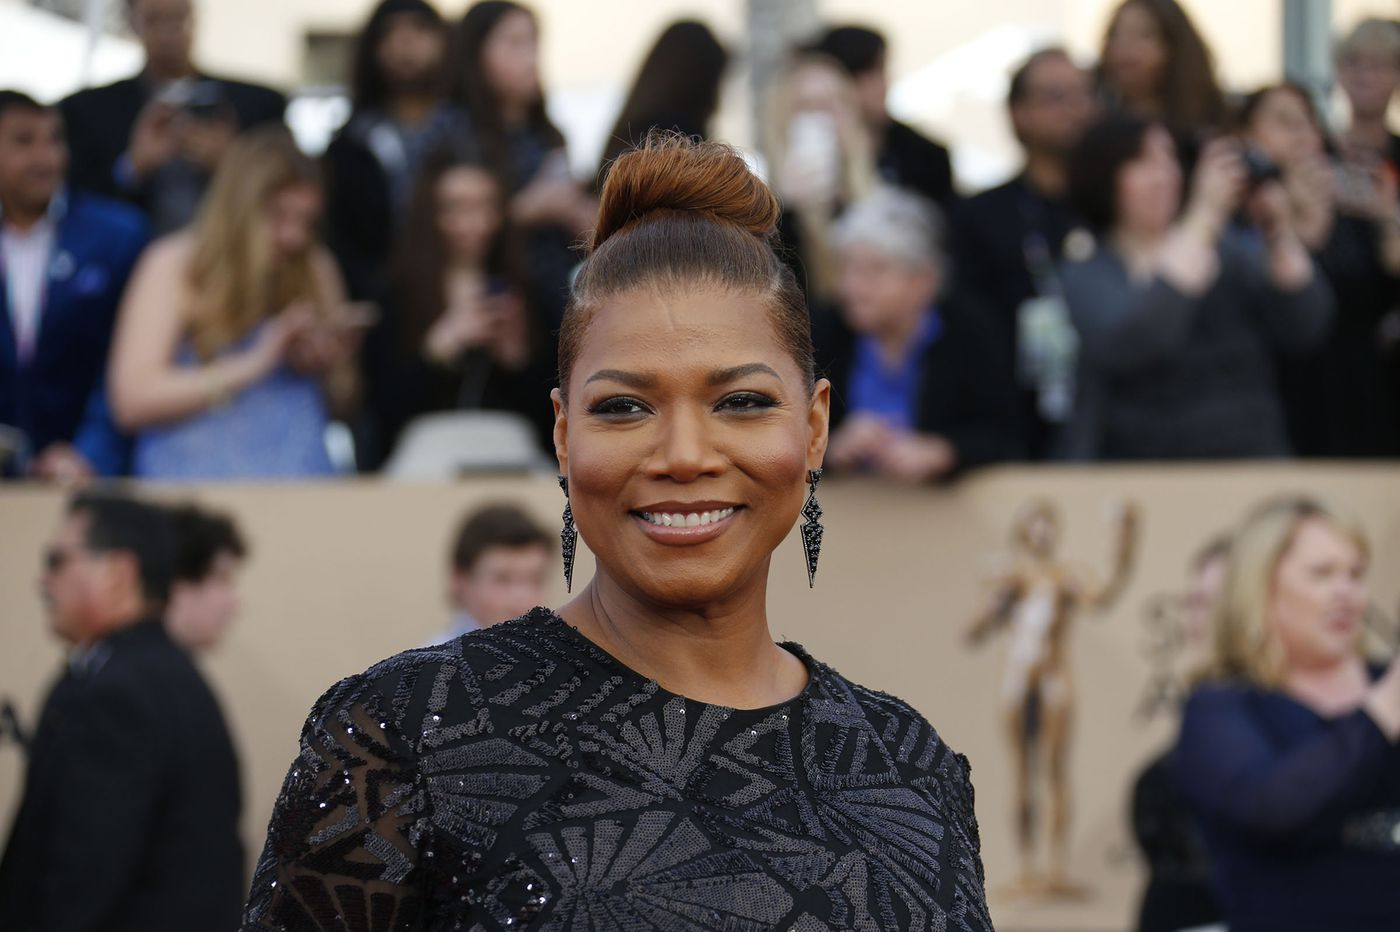 Queen Latifah will no longer receive this year's Marian Anderson Award